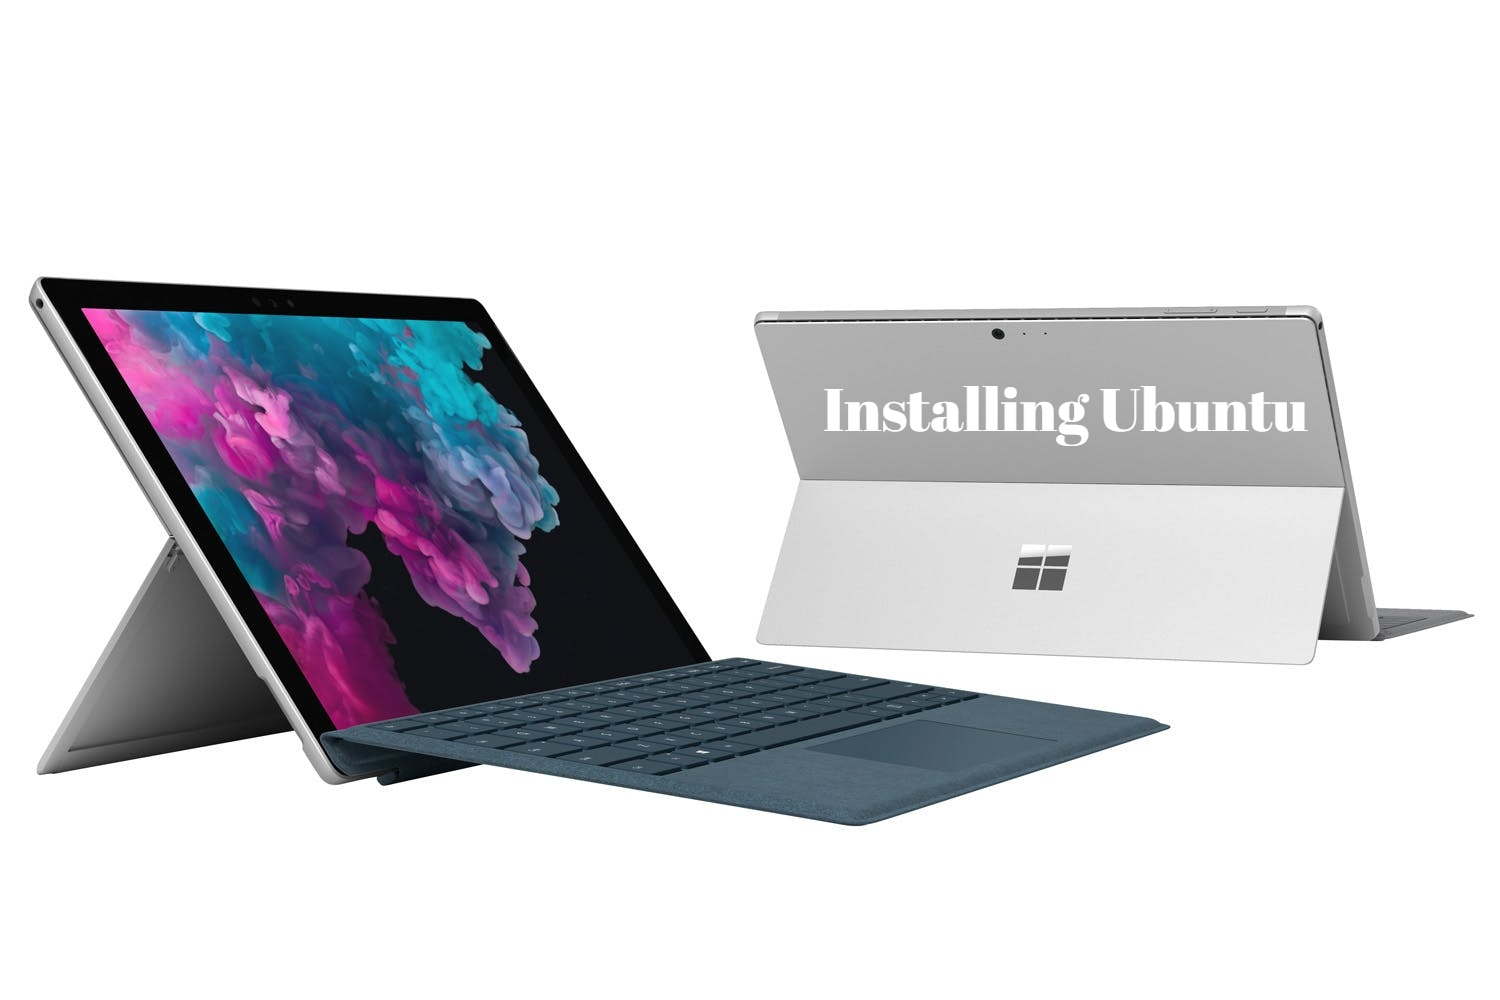 How to install Ubuntu 18.04 on Surface Pro 6 + Dual Boot